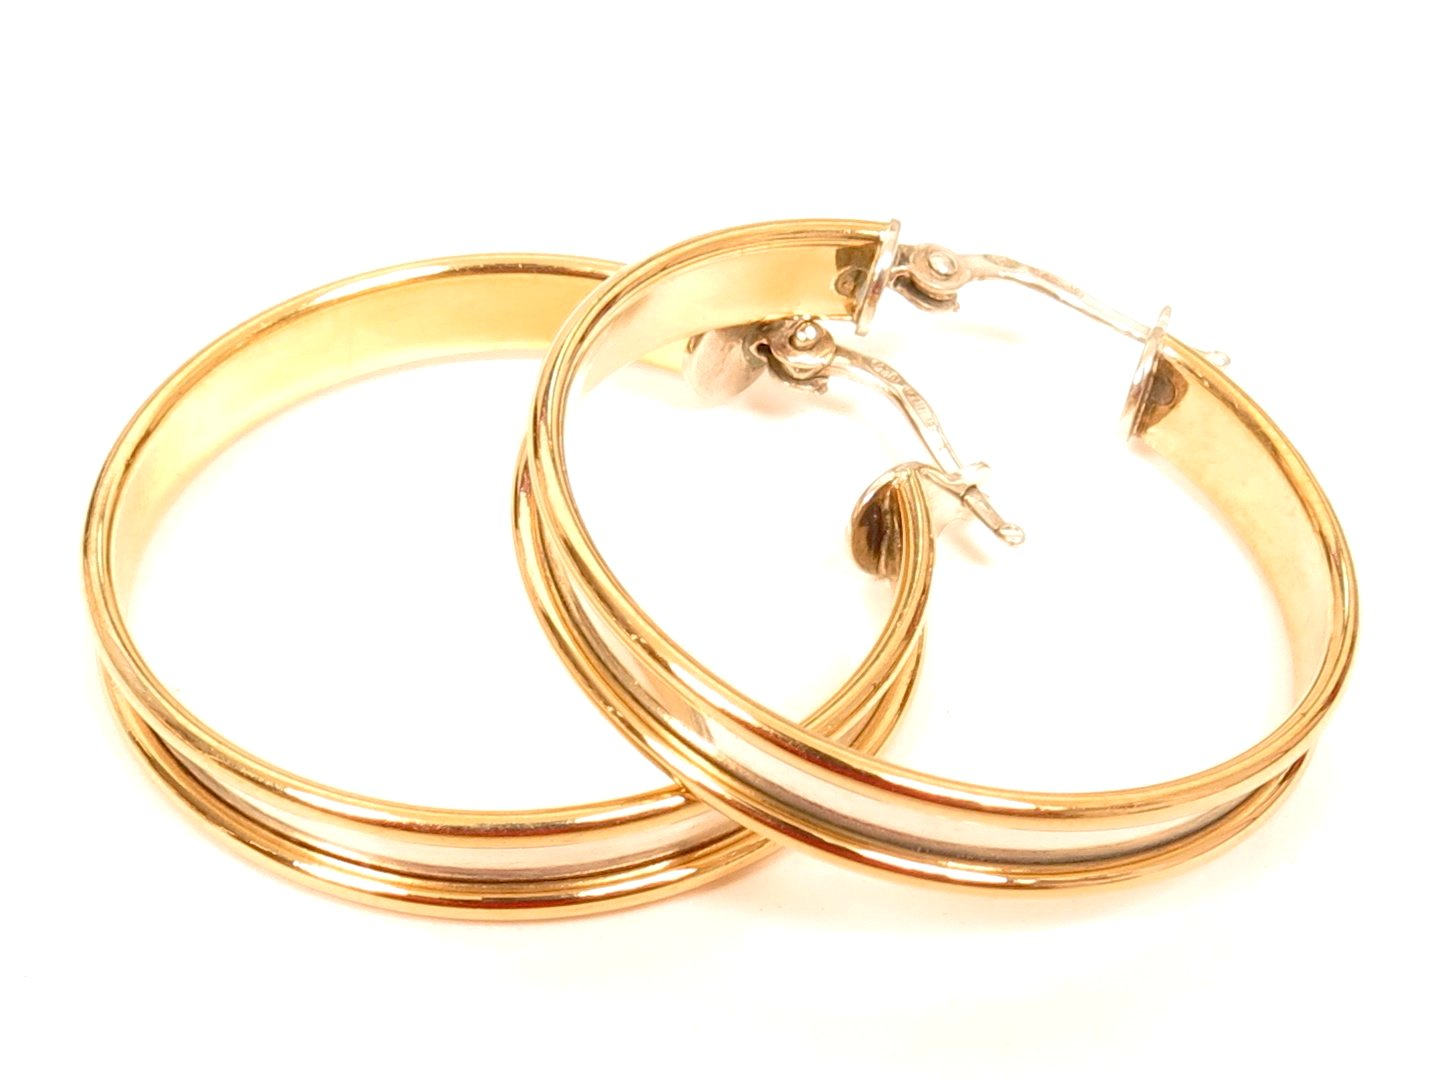 18K Solid Yellow Gold 925 Sterling Silver Large Italy Hoop  Earrings*5 8G*E514